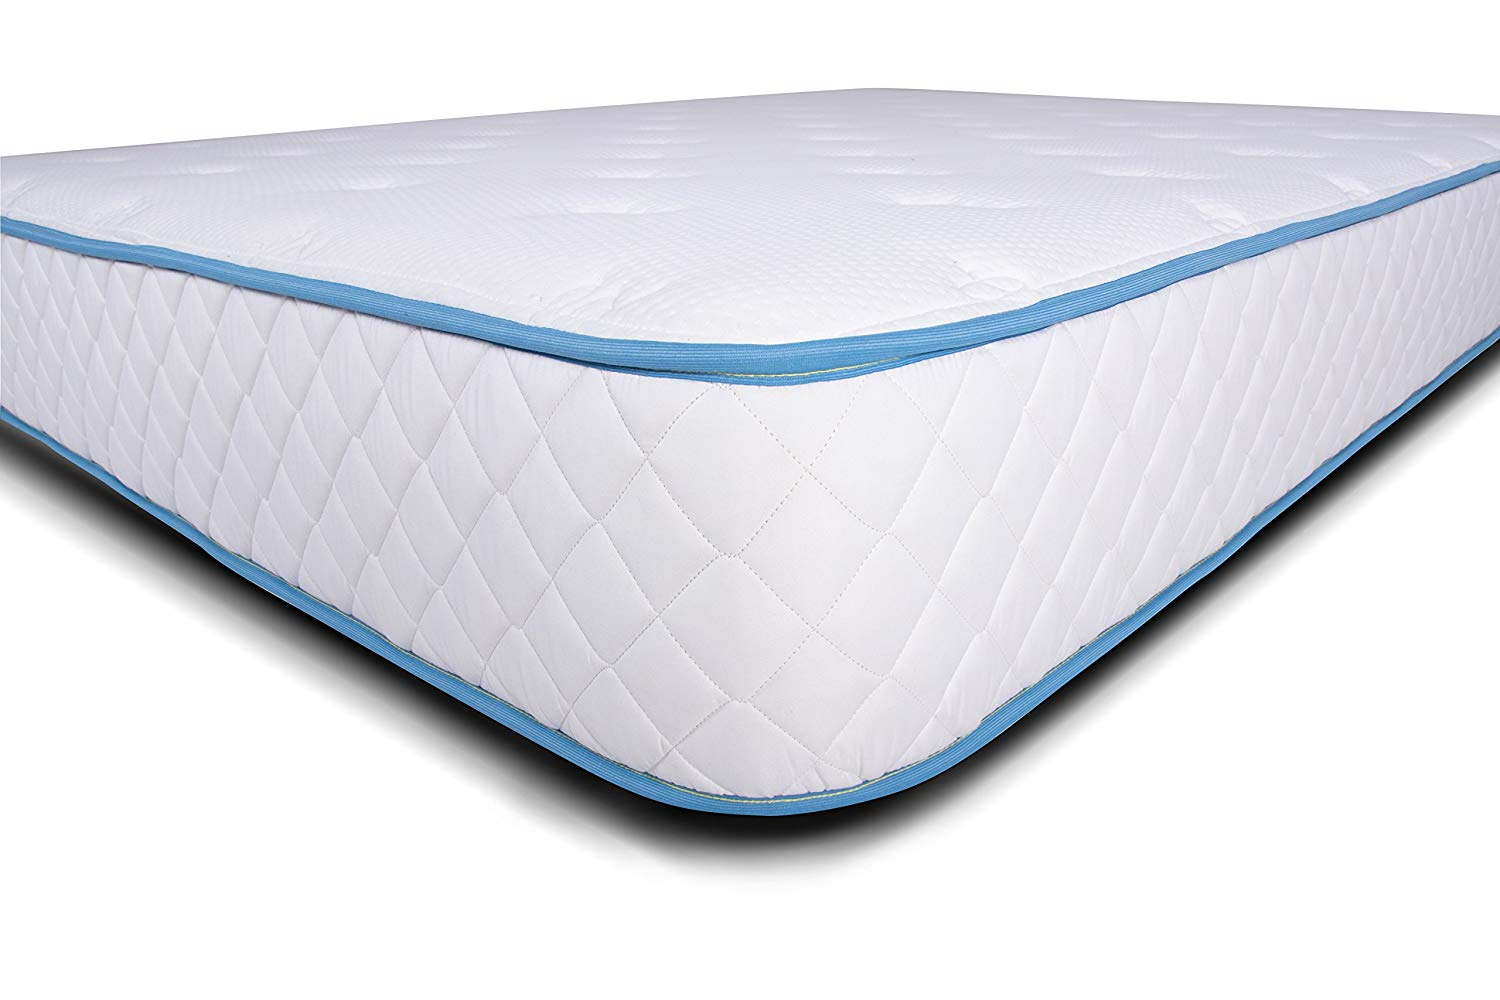 Best Memory Foam Mattress For Back Pain Quality Comfort Price